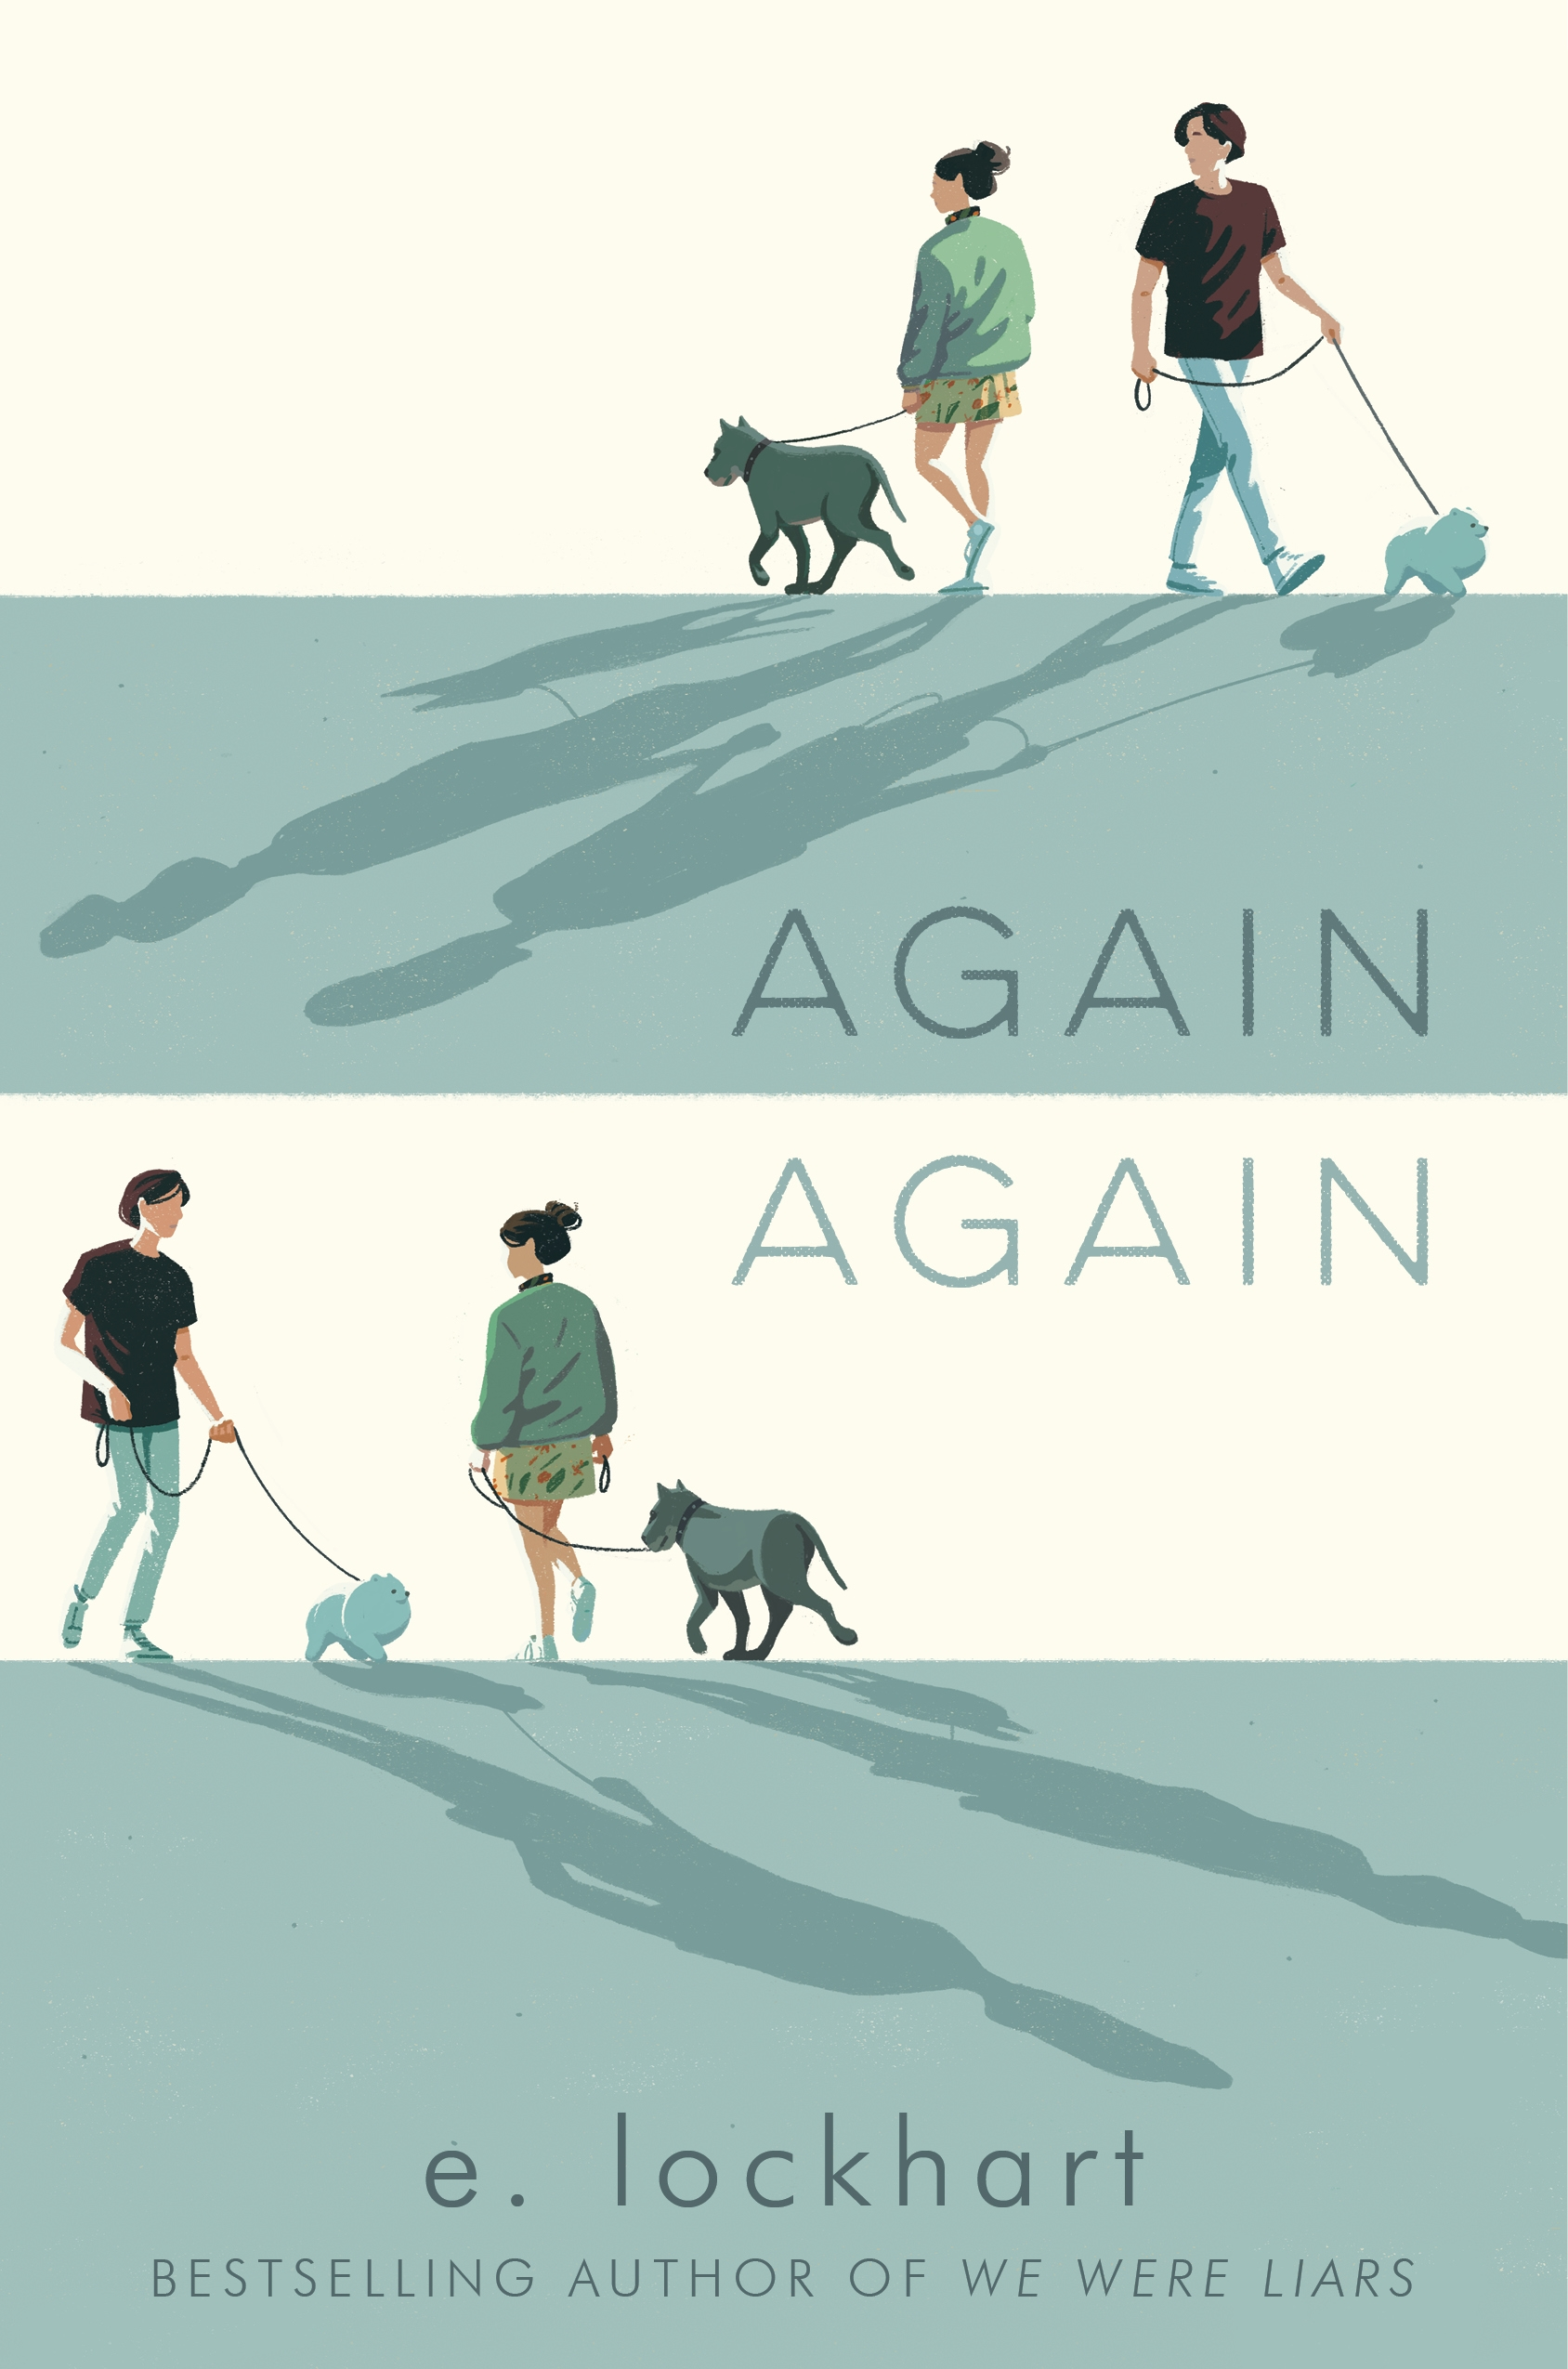 Again Again by E. LockhartEmily Jenkins